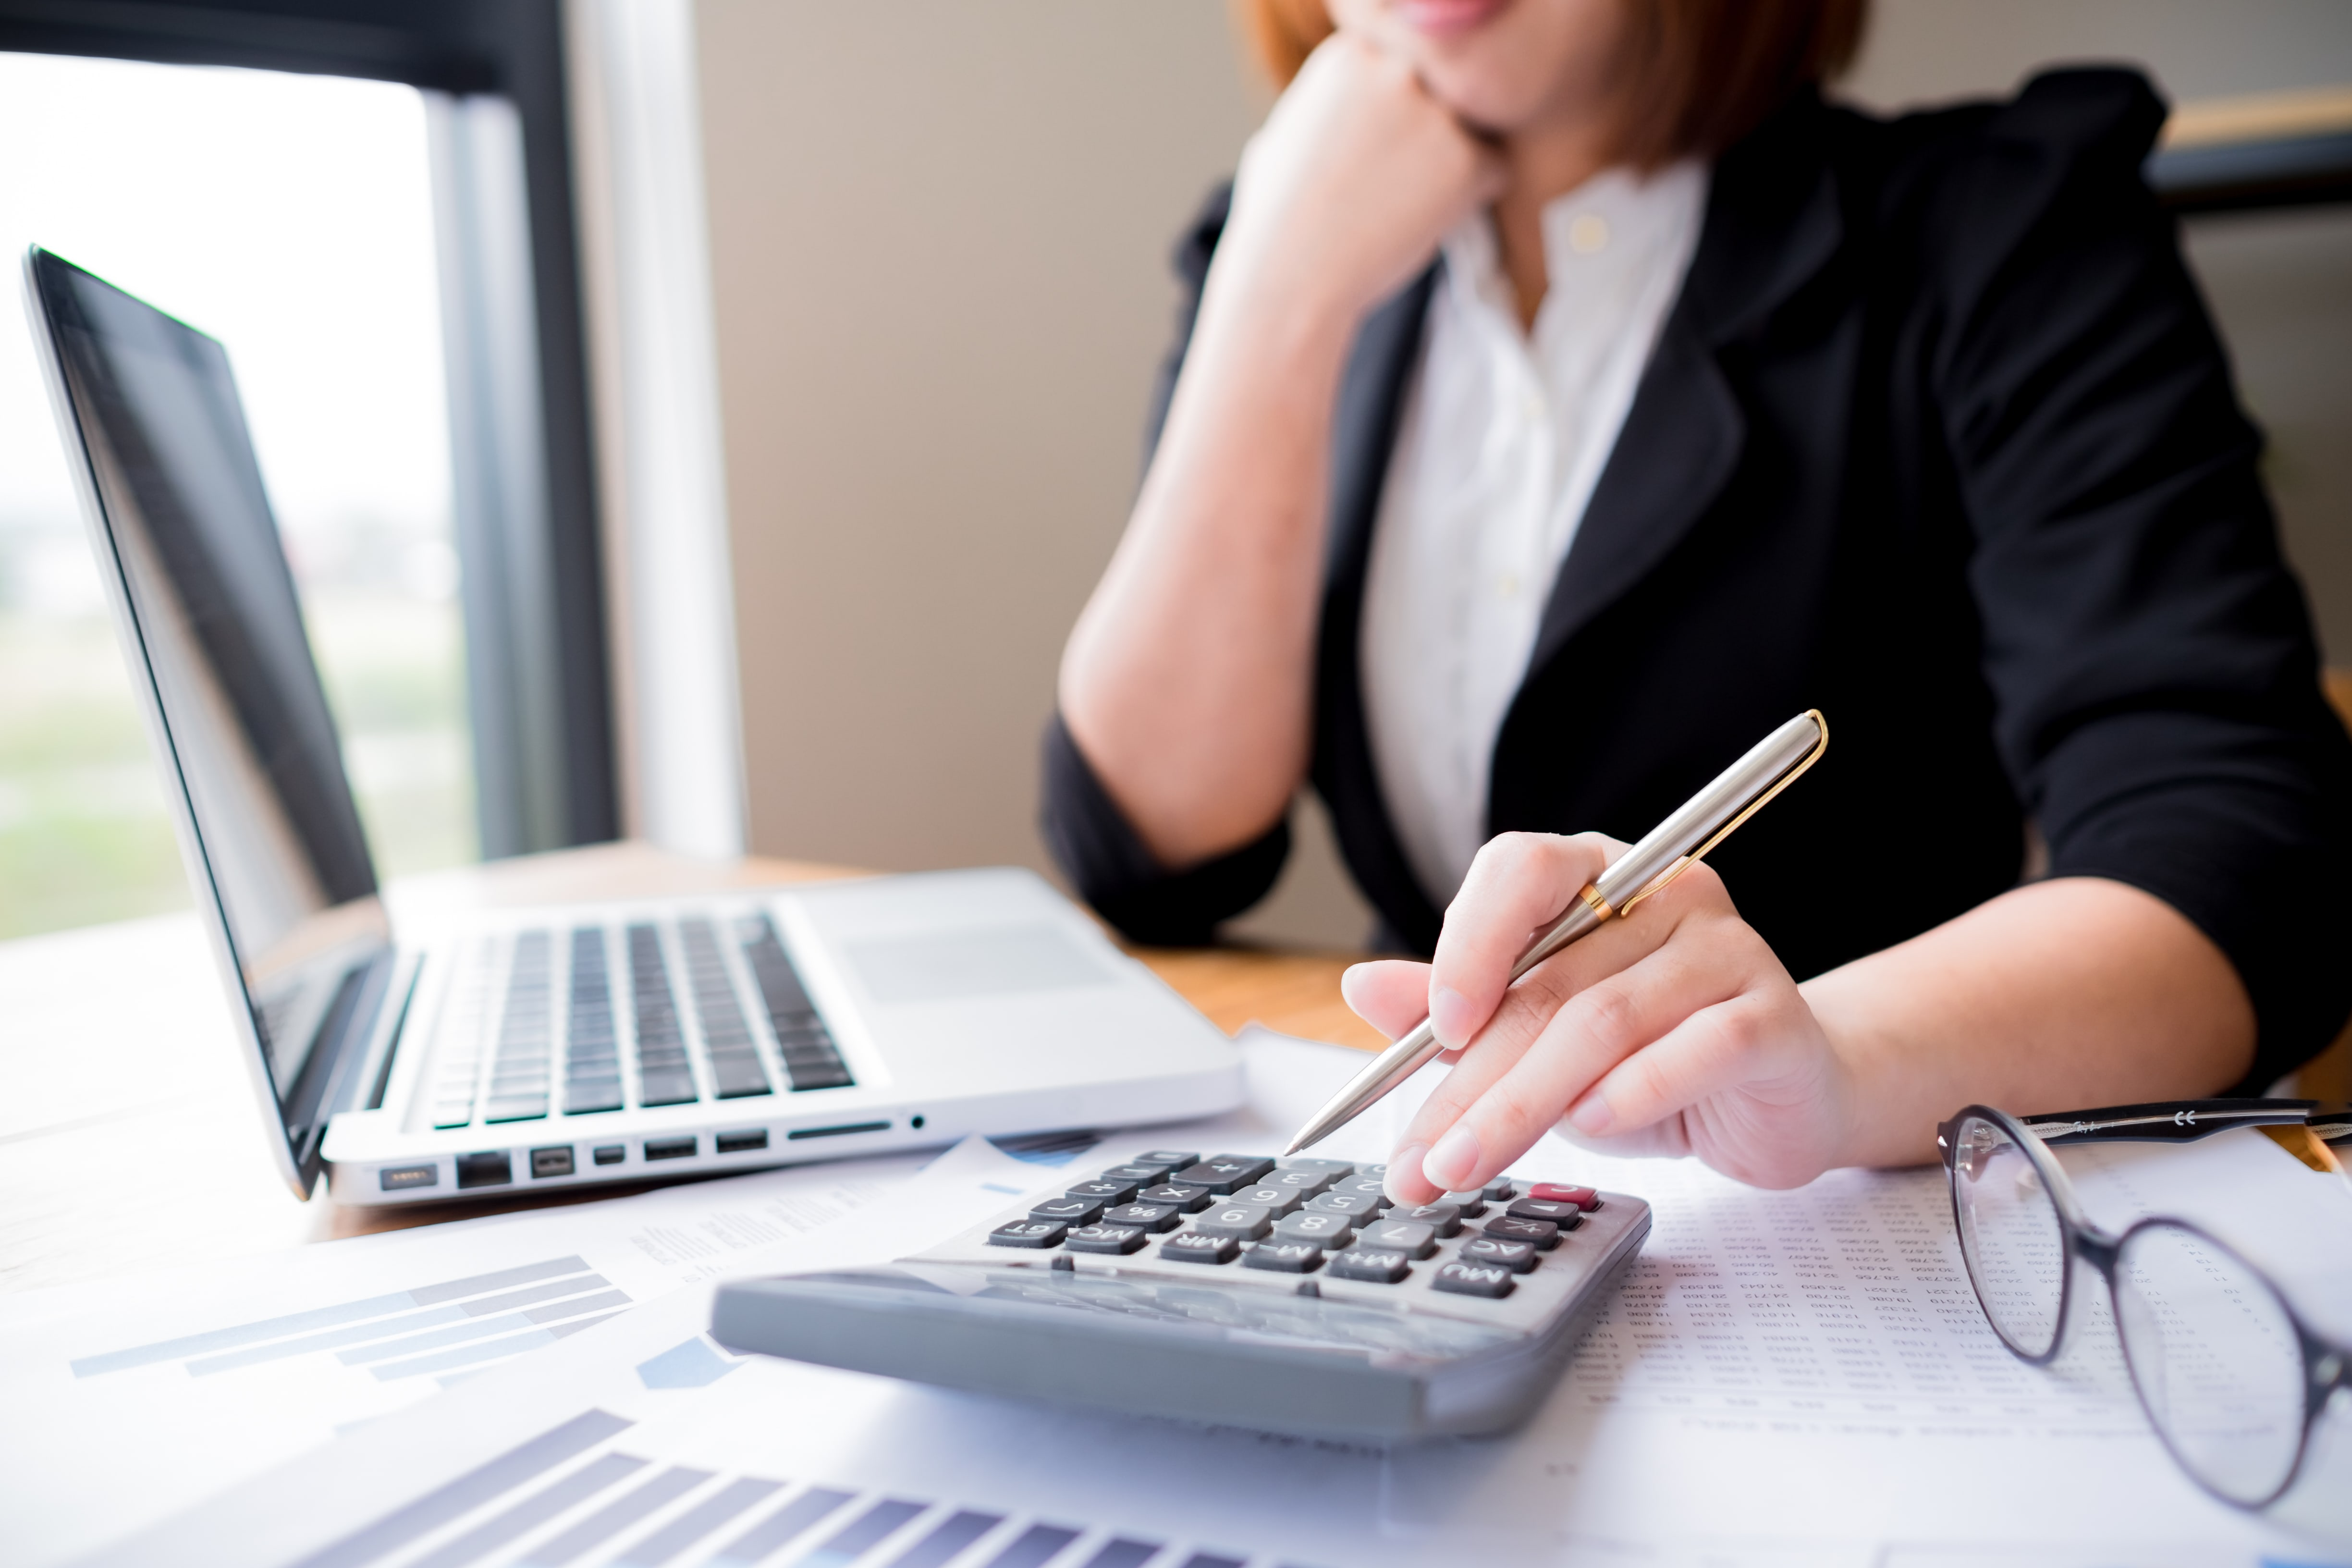 A female accountant viewing chief accounting officer resume examples on her laptop while using the calculator